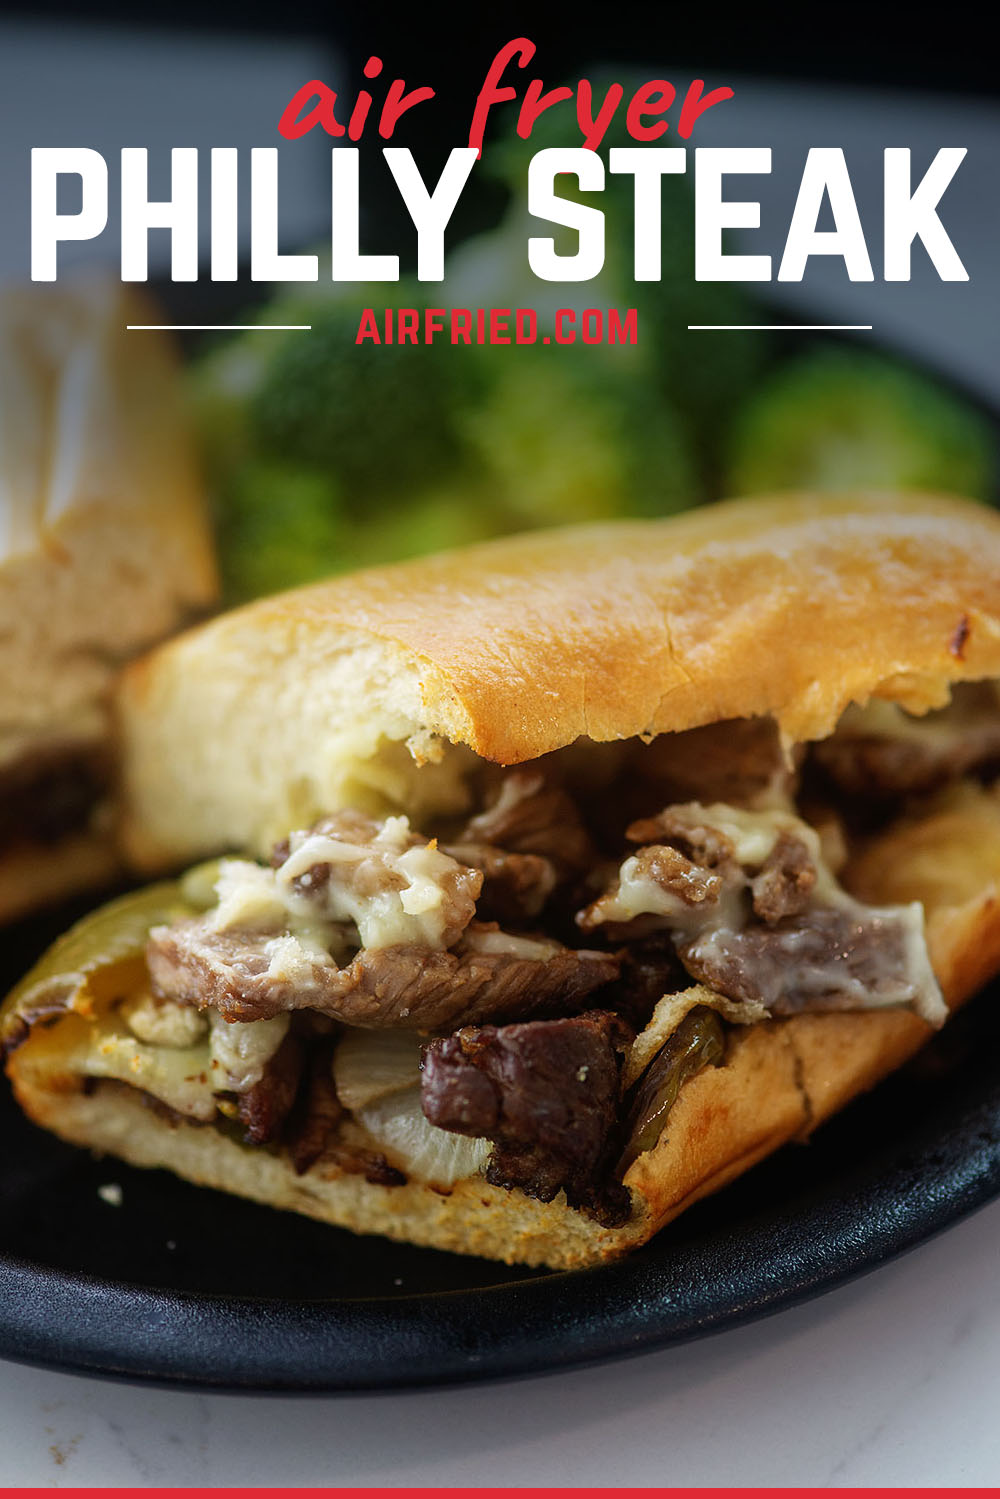 With our air fried Philly steak recipe we cook everything and then continue to use the air fryer to make the sandwich an almost steamy finish!